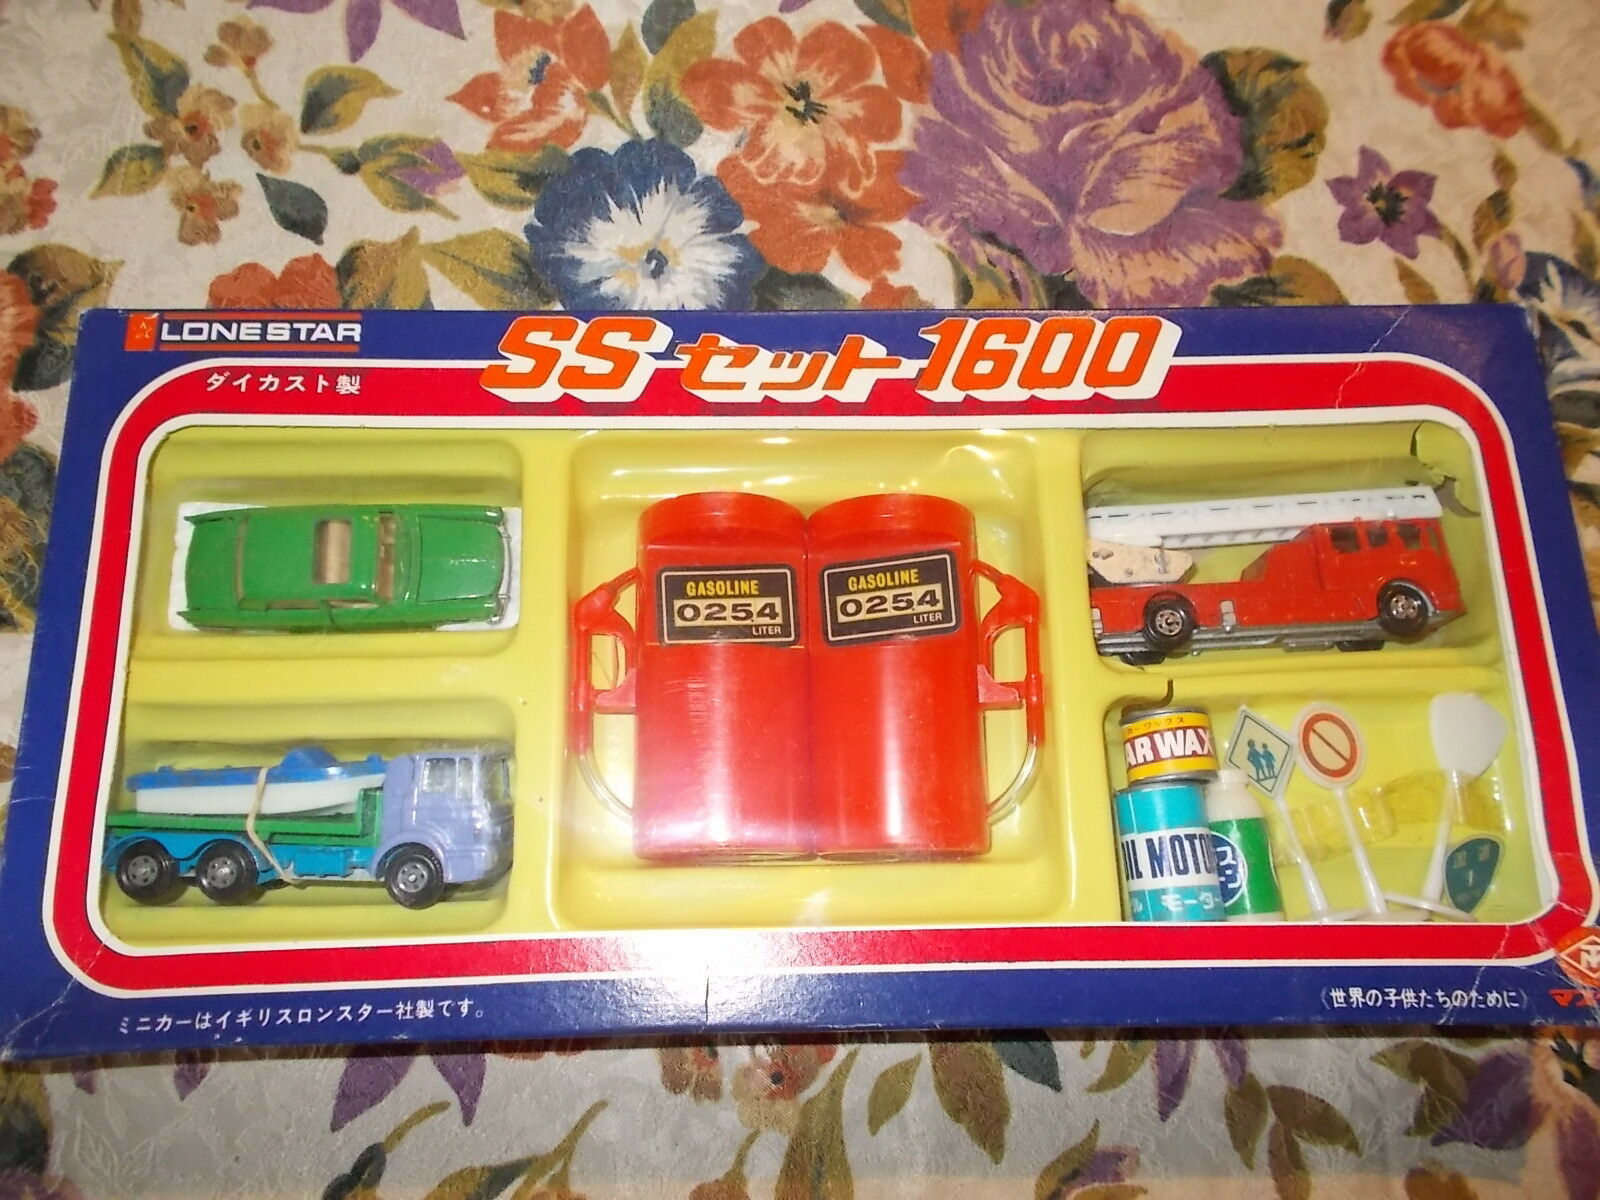 Very Rare Lone Star Flyers Set SS 1600 with Peugeot 404